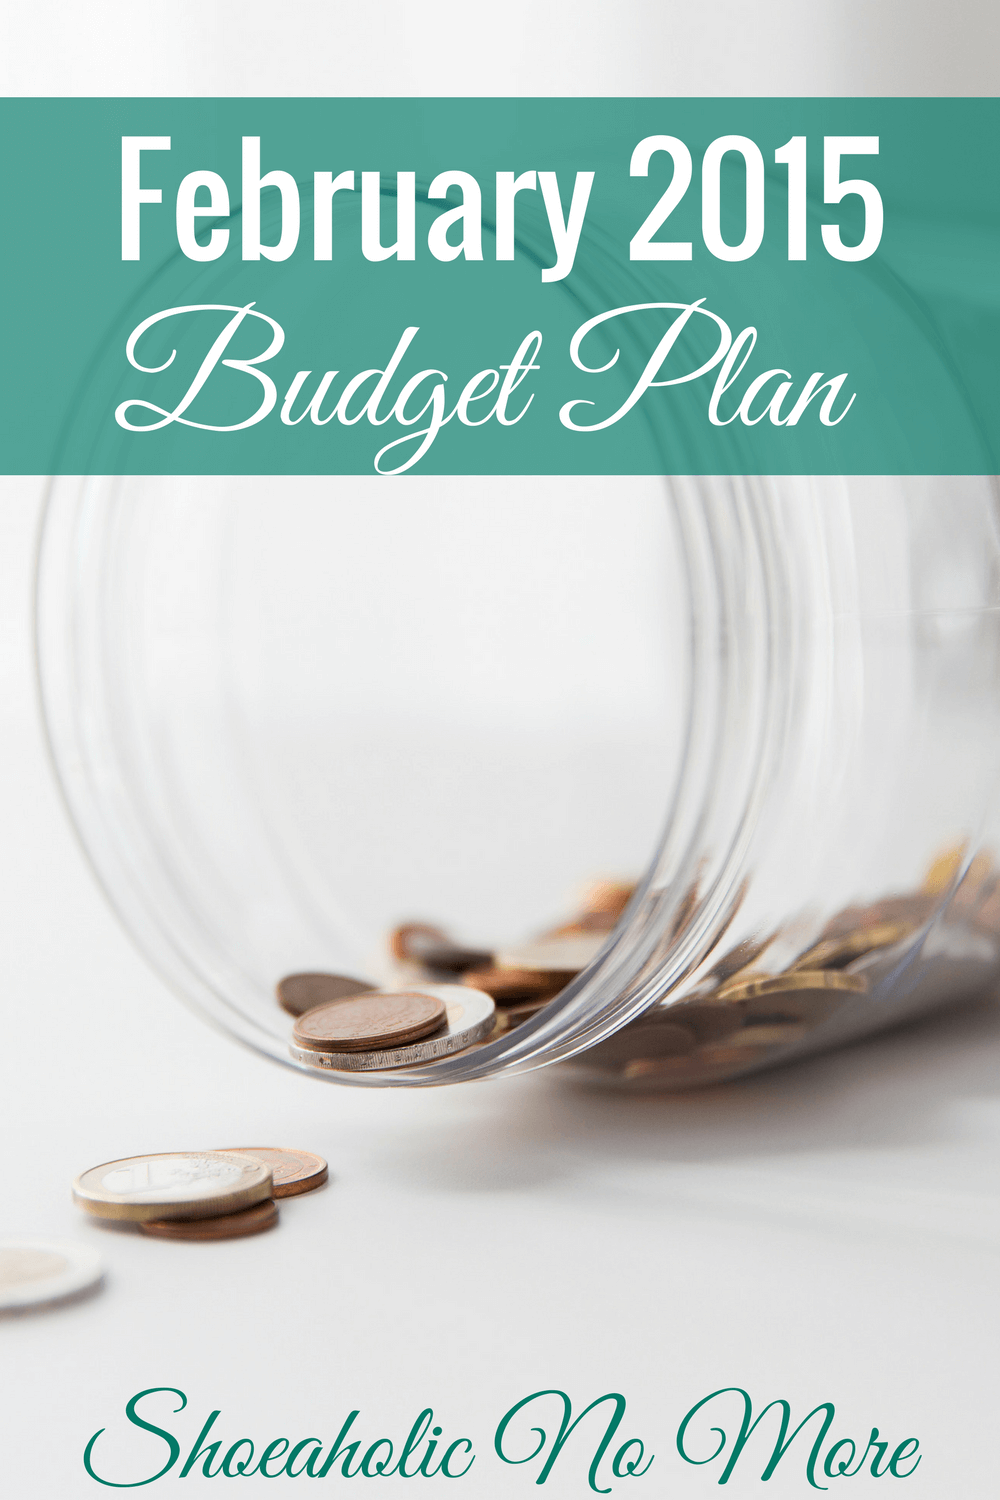 I love how this blogger shares her budget plans every month! Makes it so much easier to be accountable.